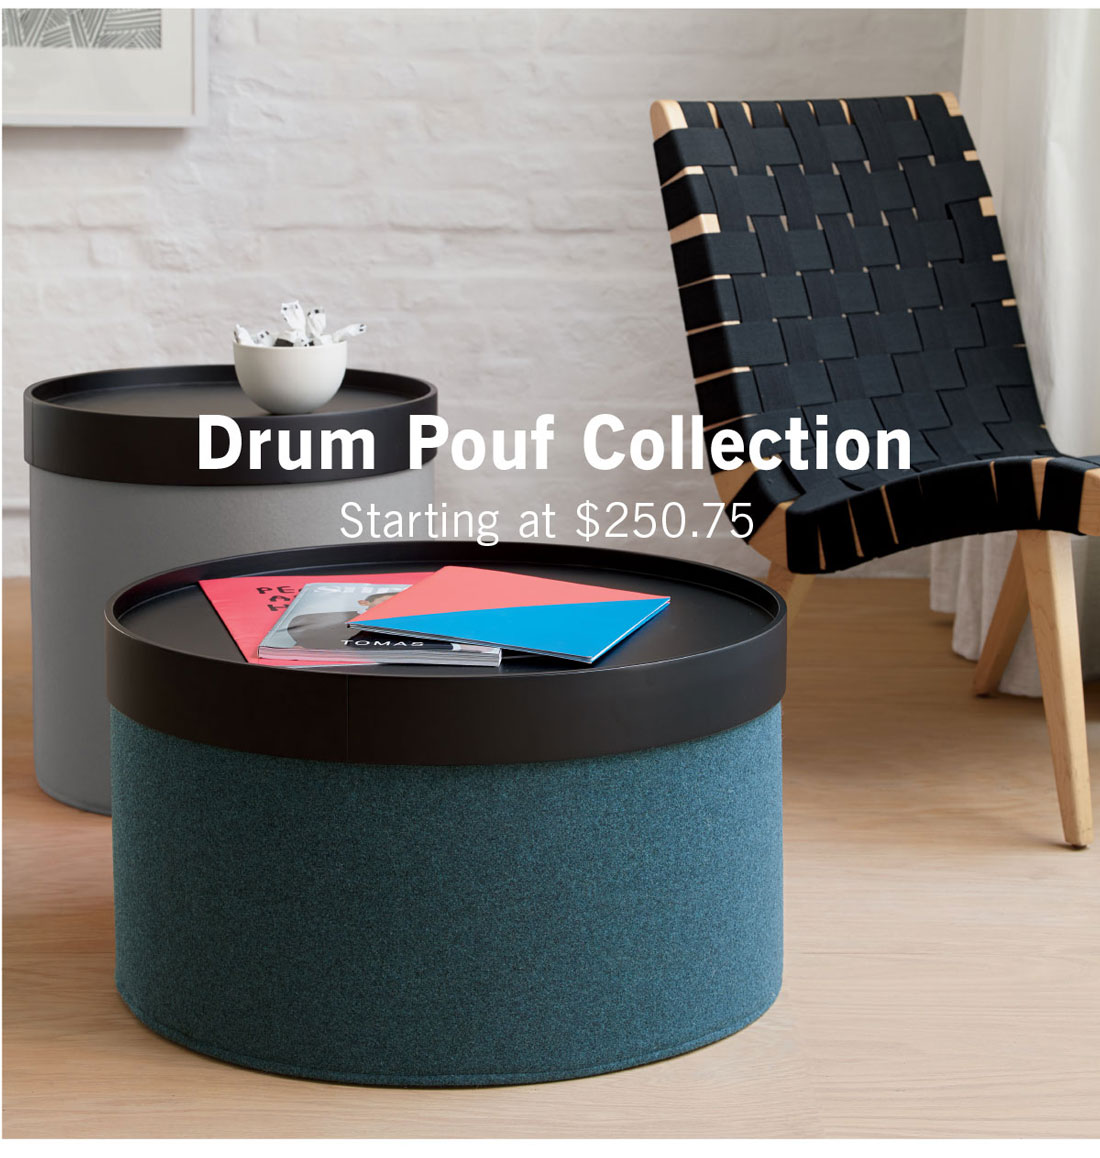 Drum Pouf Collection